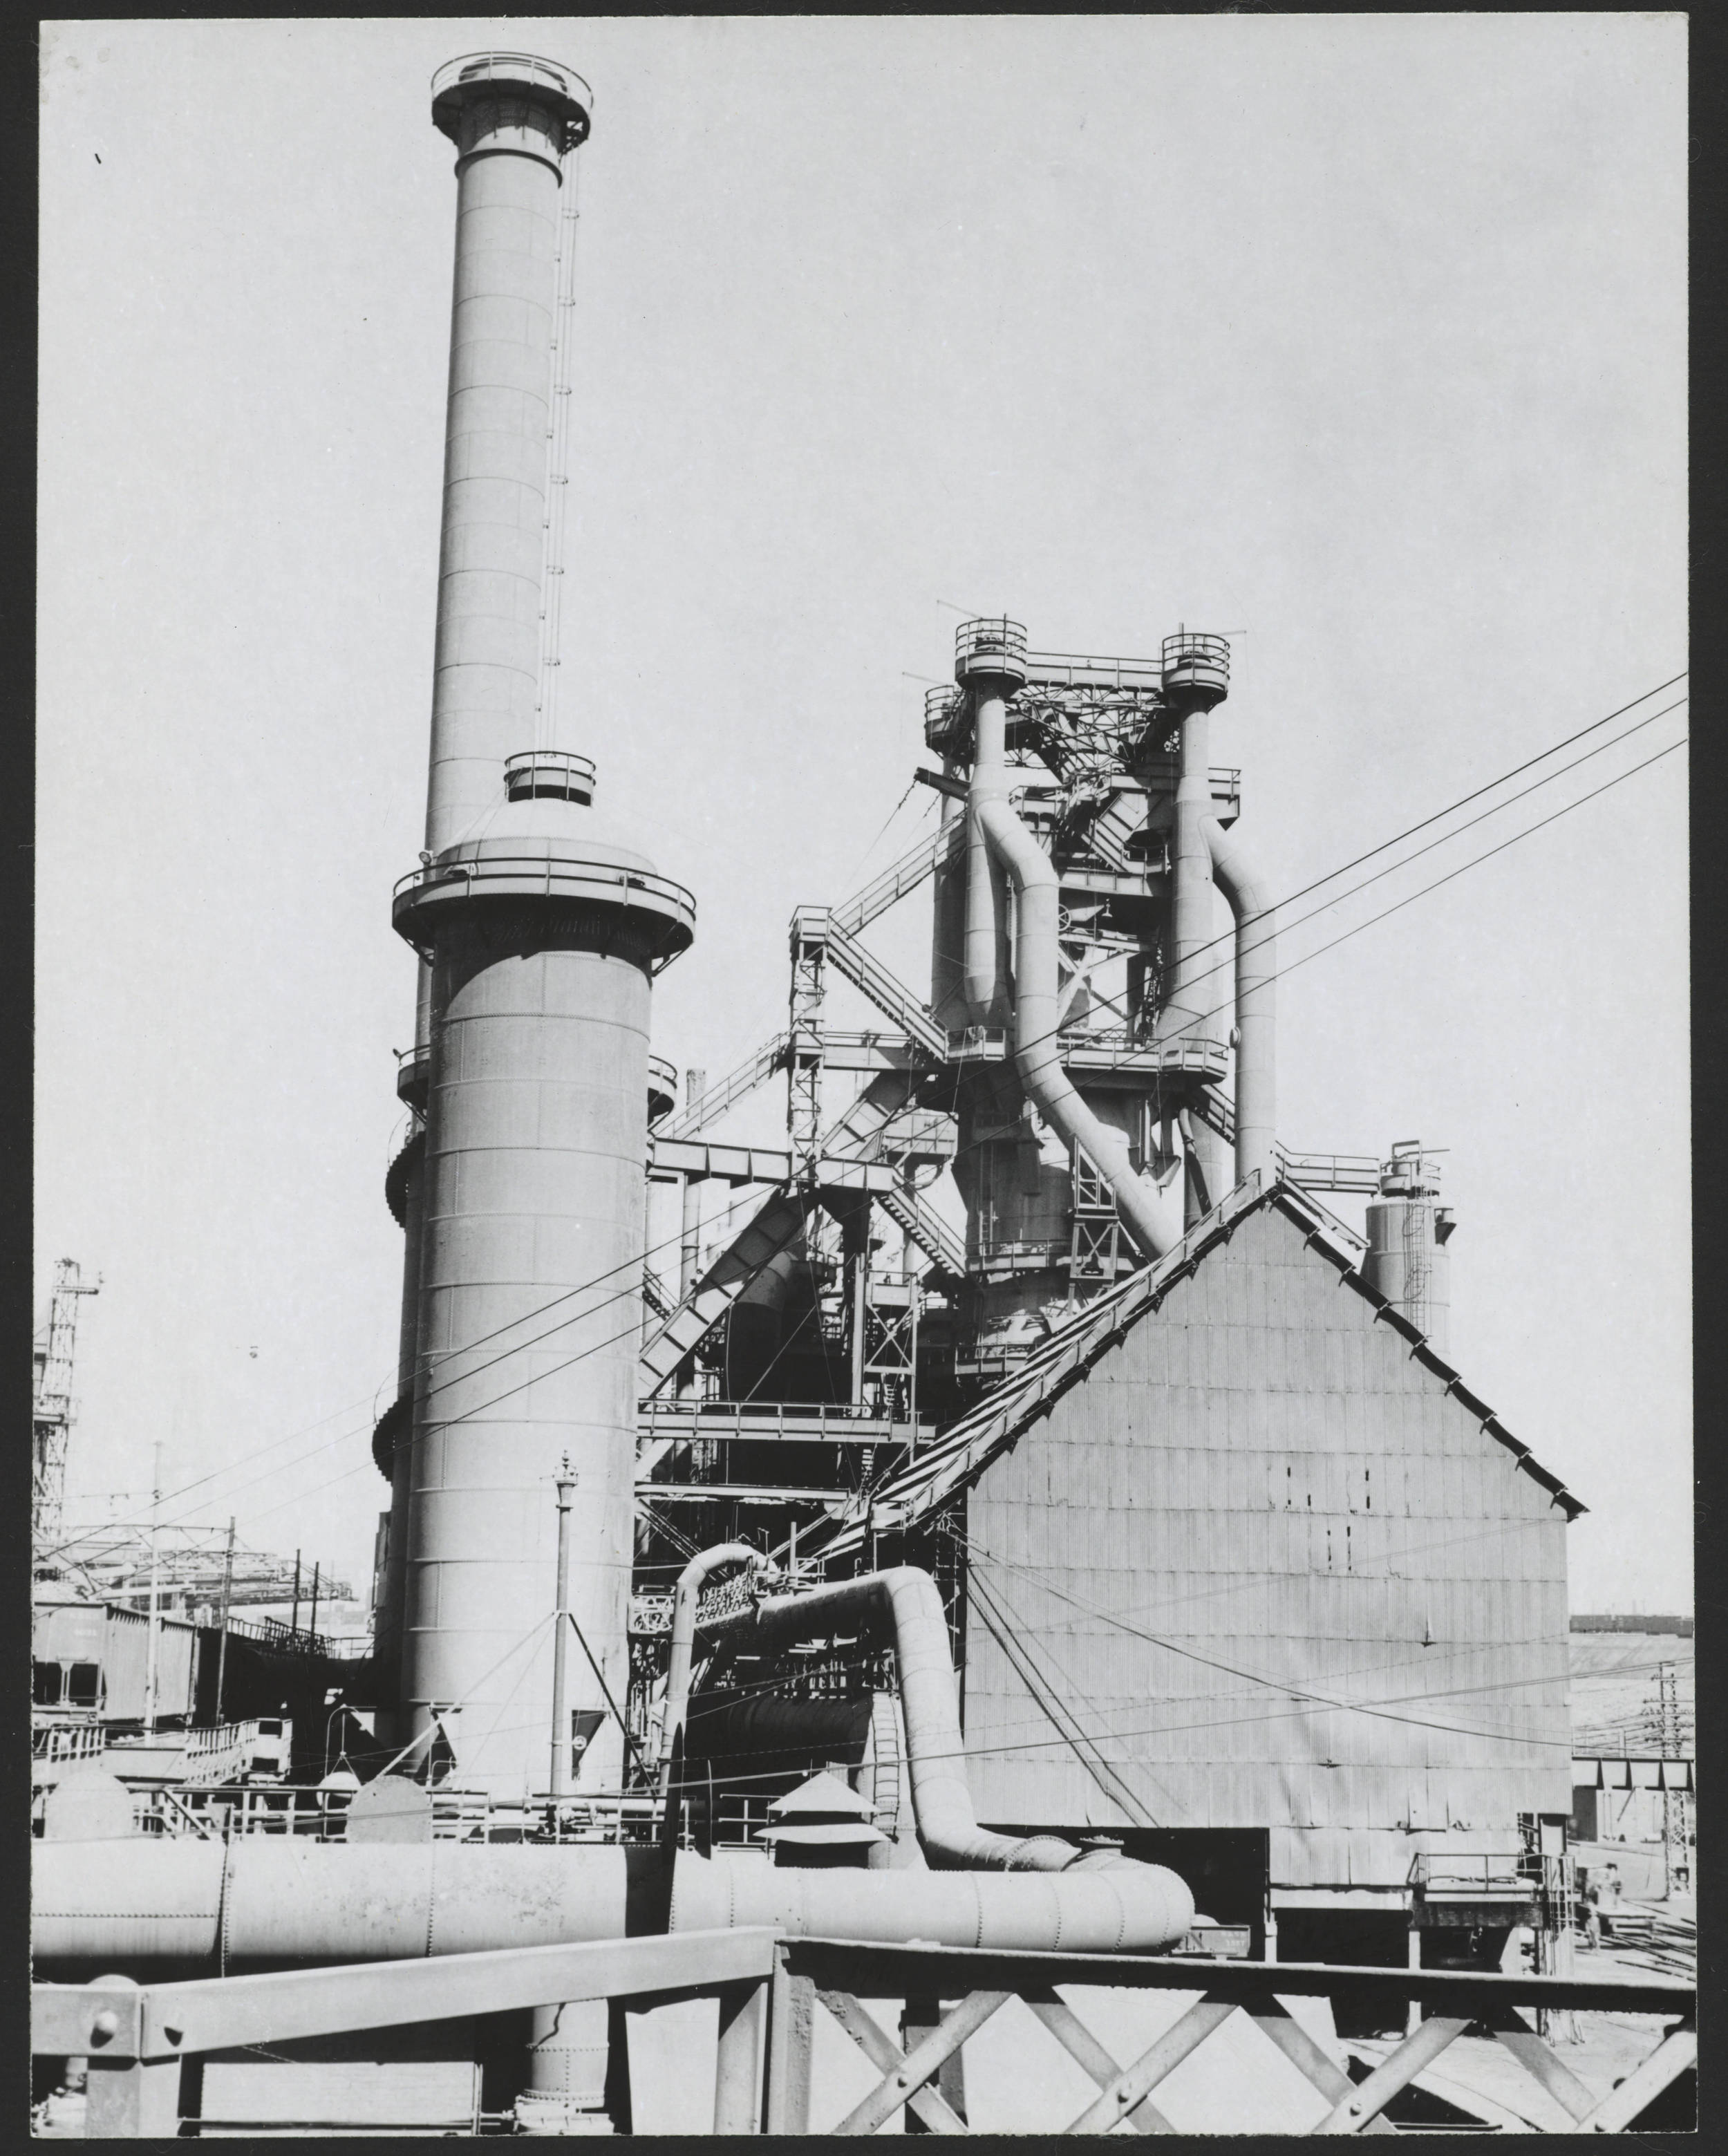 American_Steel_and_Wire_1946_CP0088.jpg